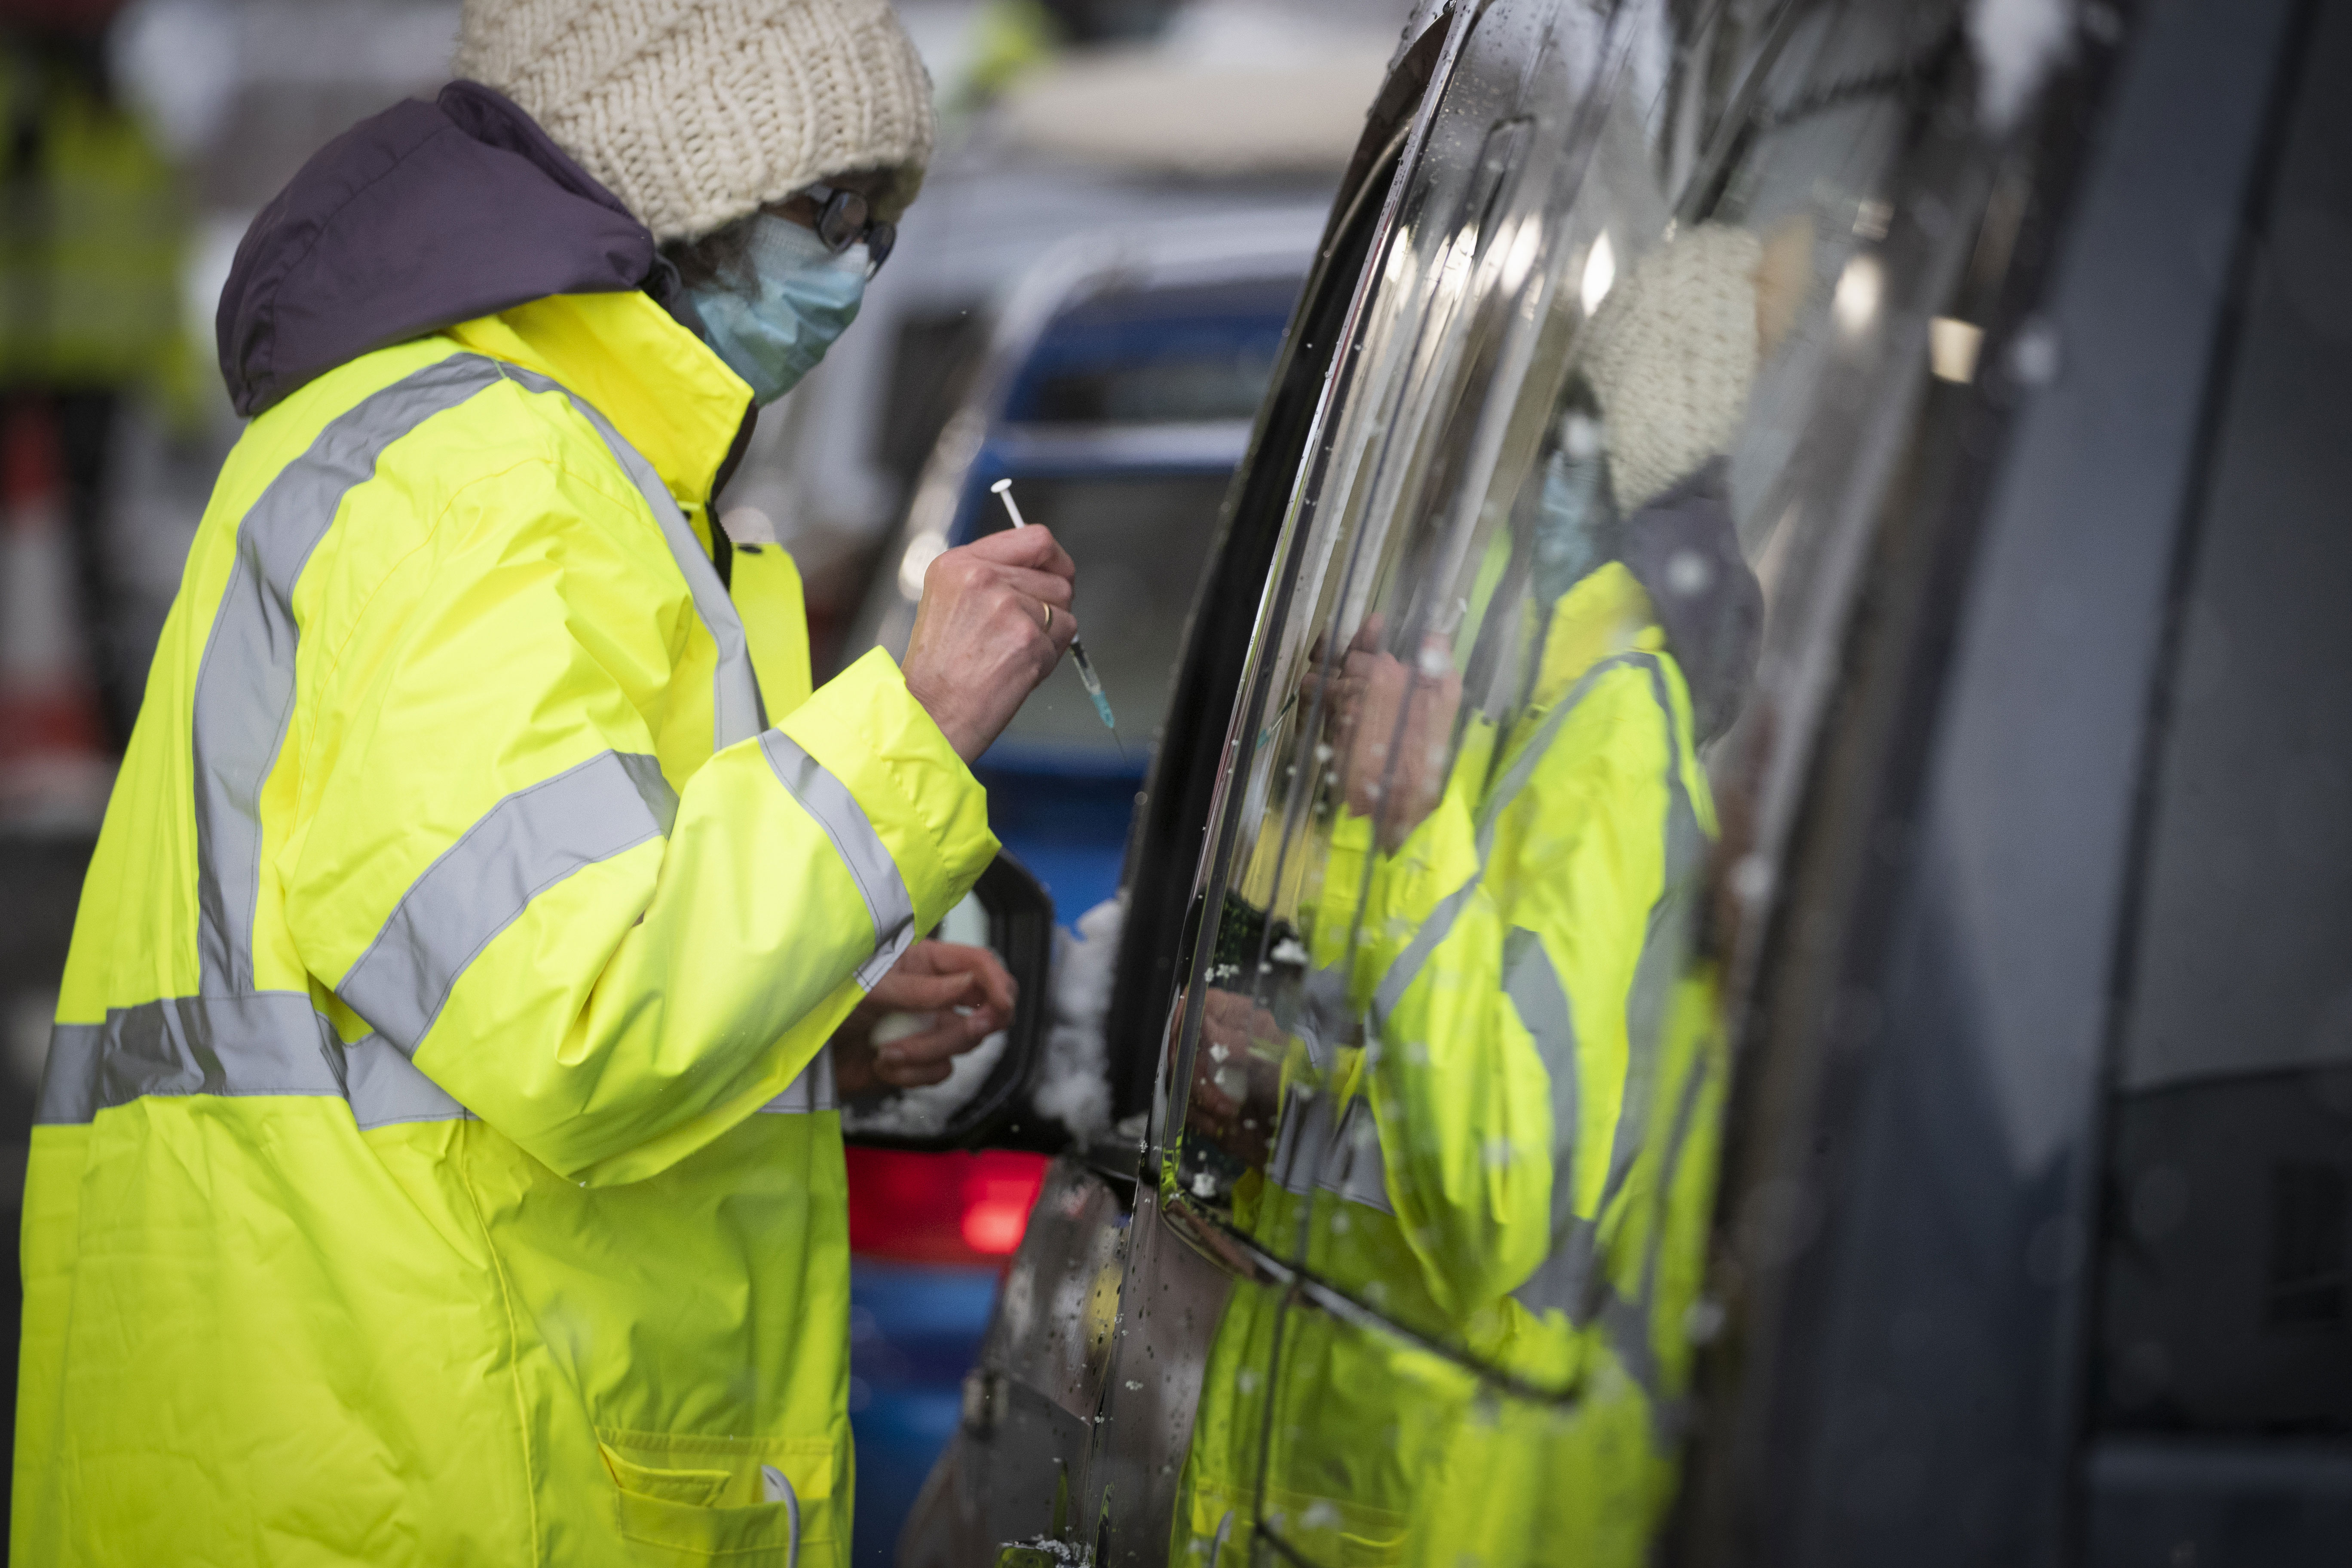 A vaccination team member works at a drive-thru Covid-19 vaccination center in Musselburgh, Scotland, on February 10.